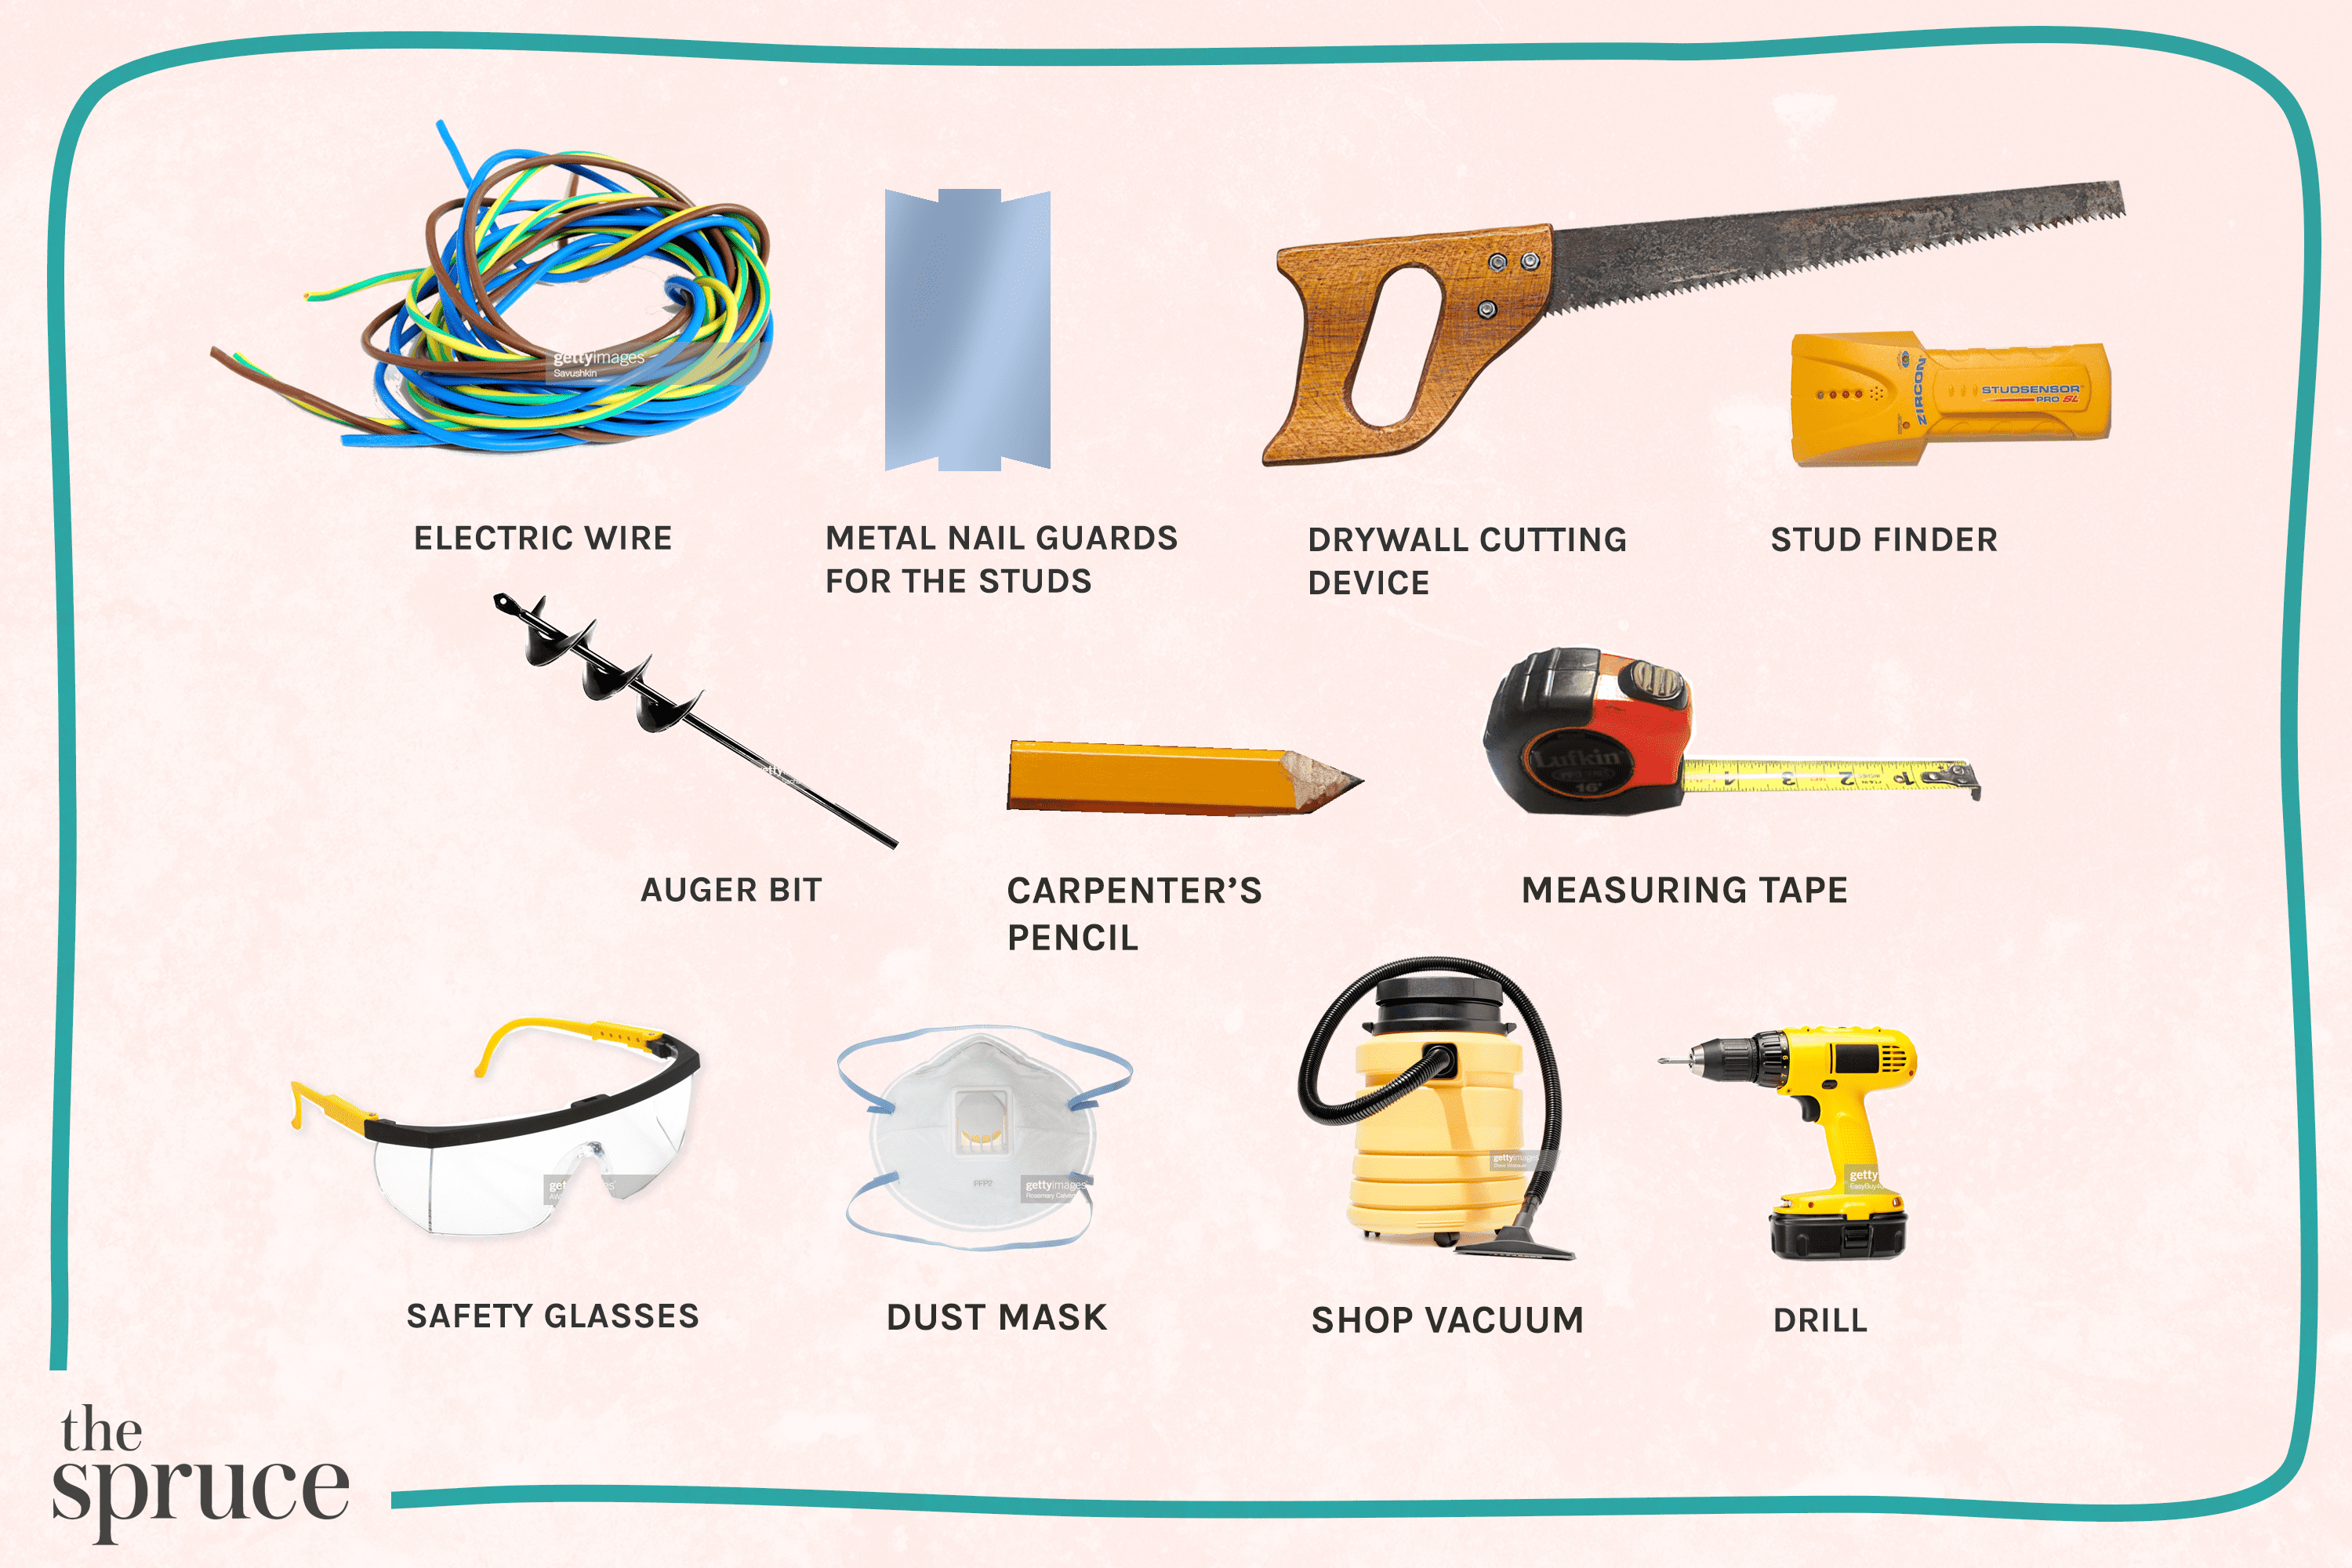 Materials and tools to run an electrical wire